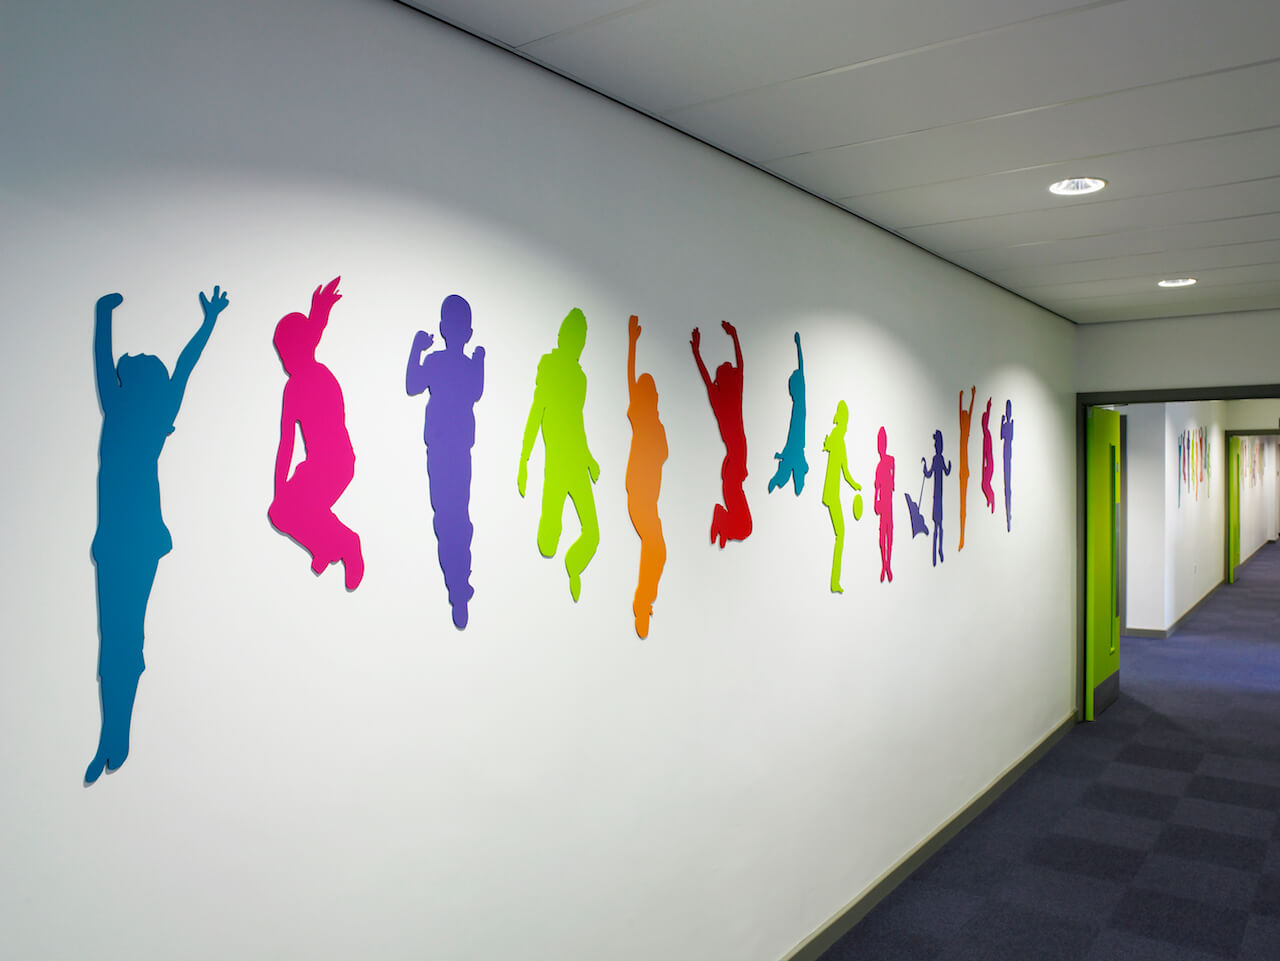 Wayfinding and environmental graphic design with a multi-coloured supergraphic of children jumping